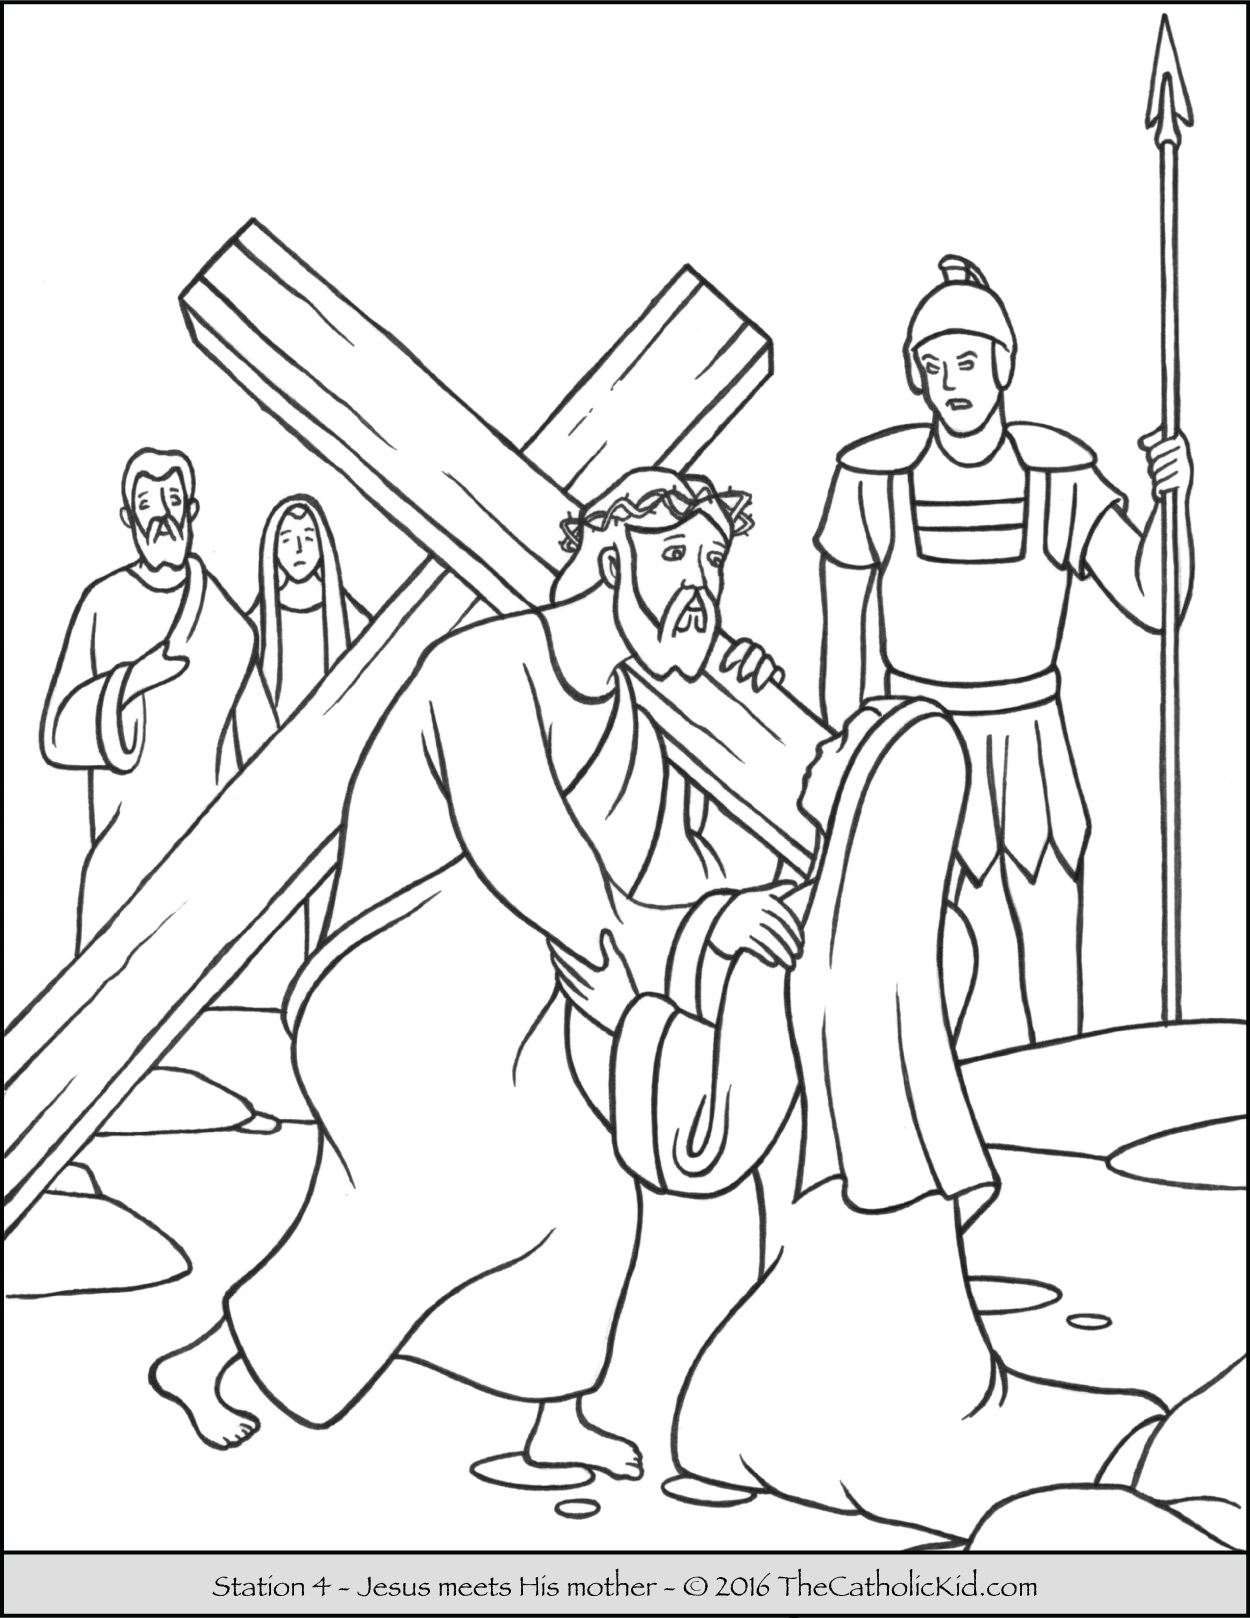 Living stations of the cross clipart banner transparent download Stations of the Cross Coloring Pages - The Catholic Kid banner transparent download